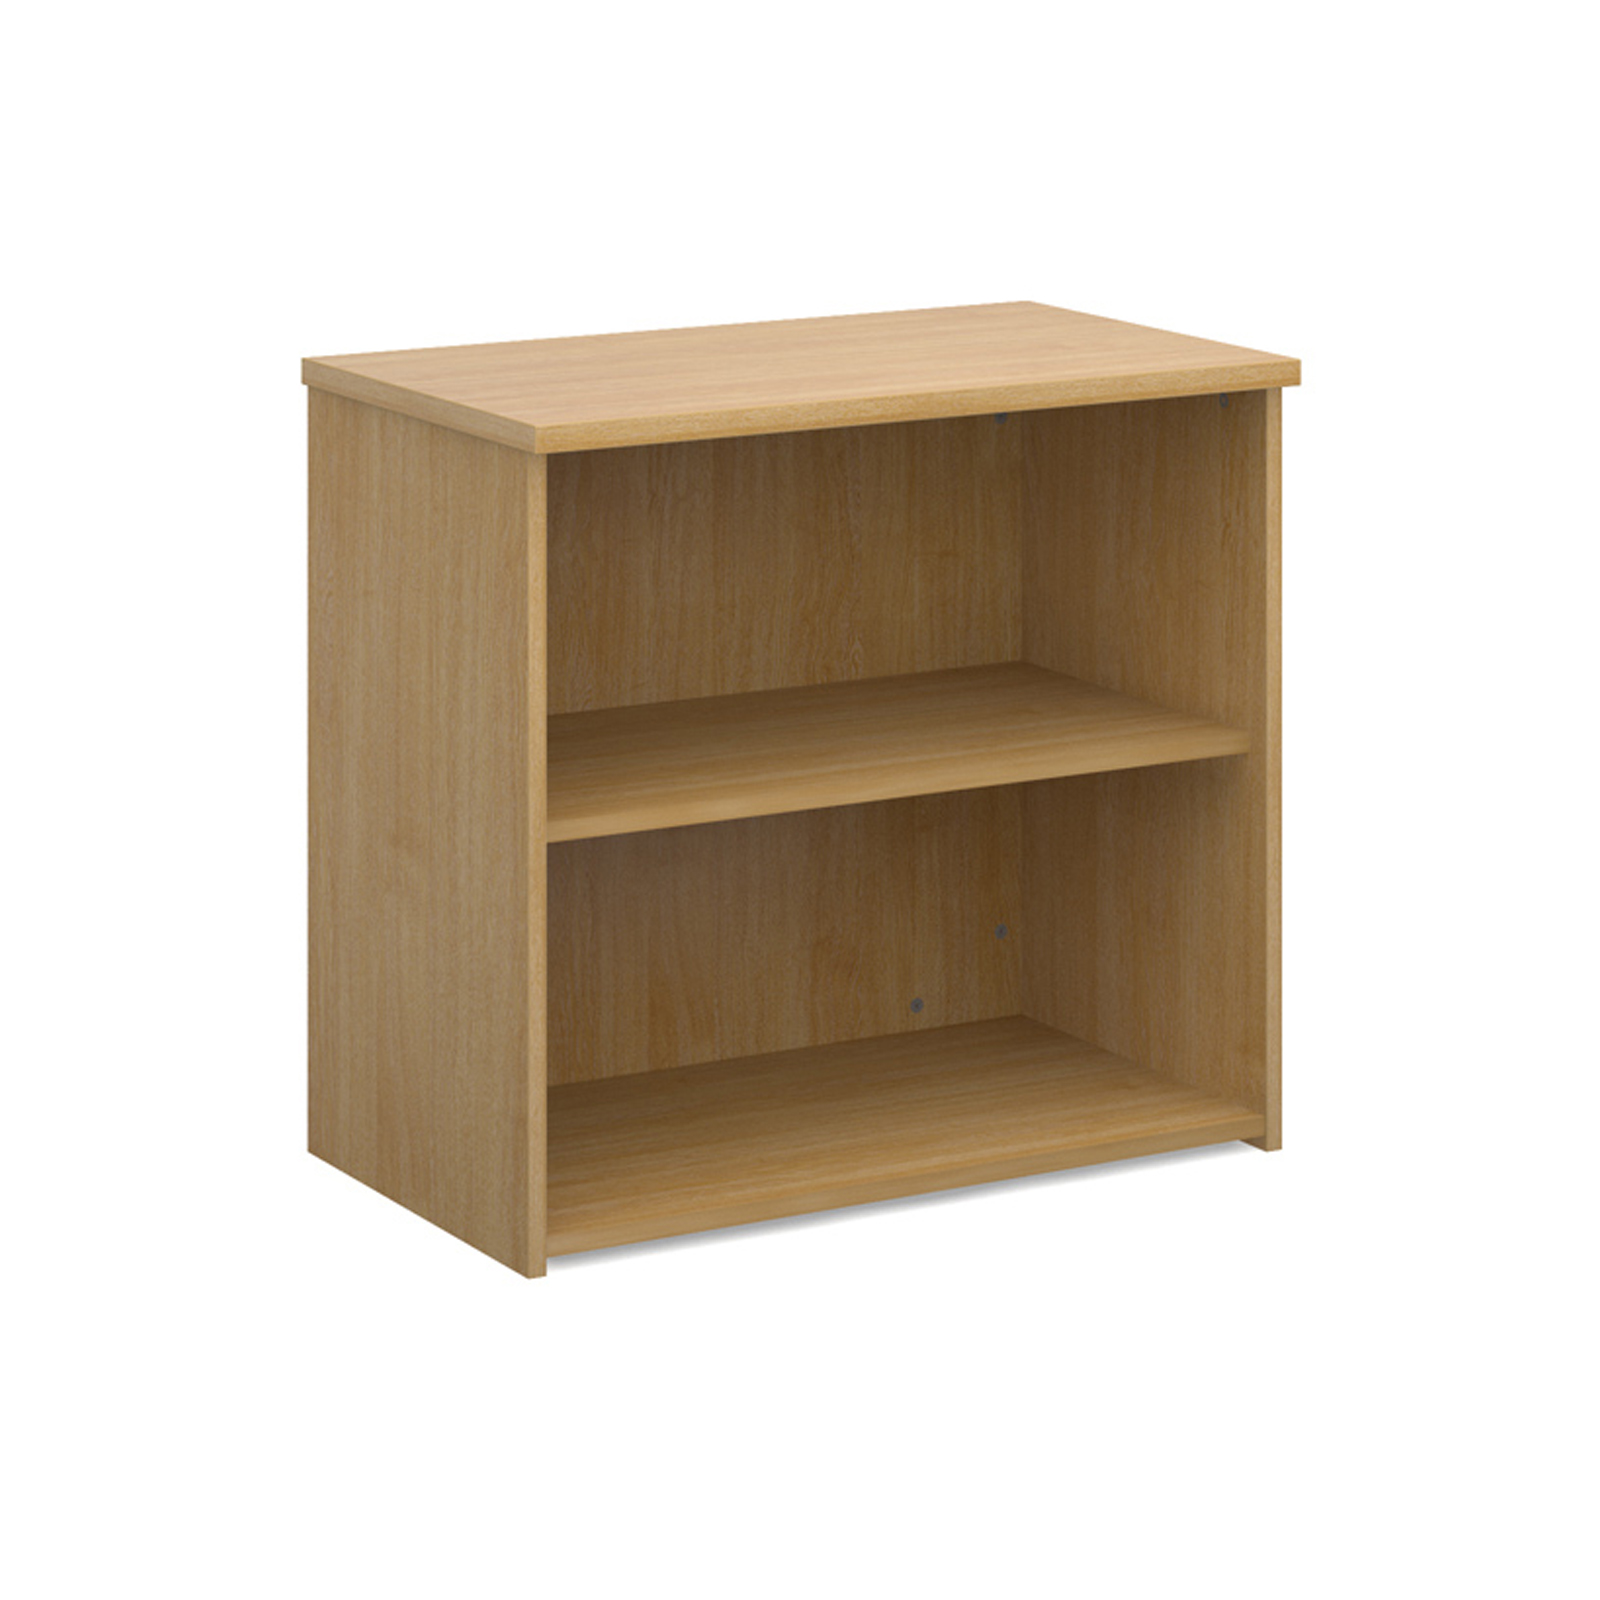 Universal bookcase 740mm high with 1 shelf - oak